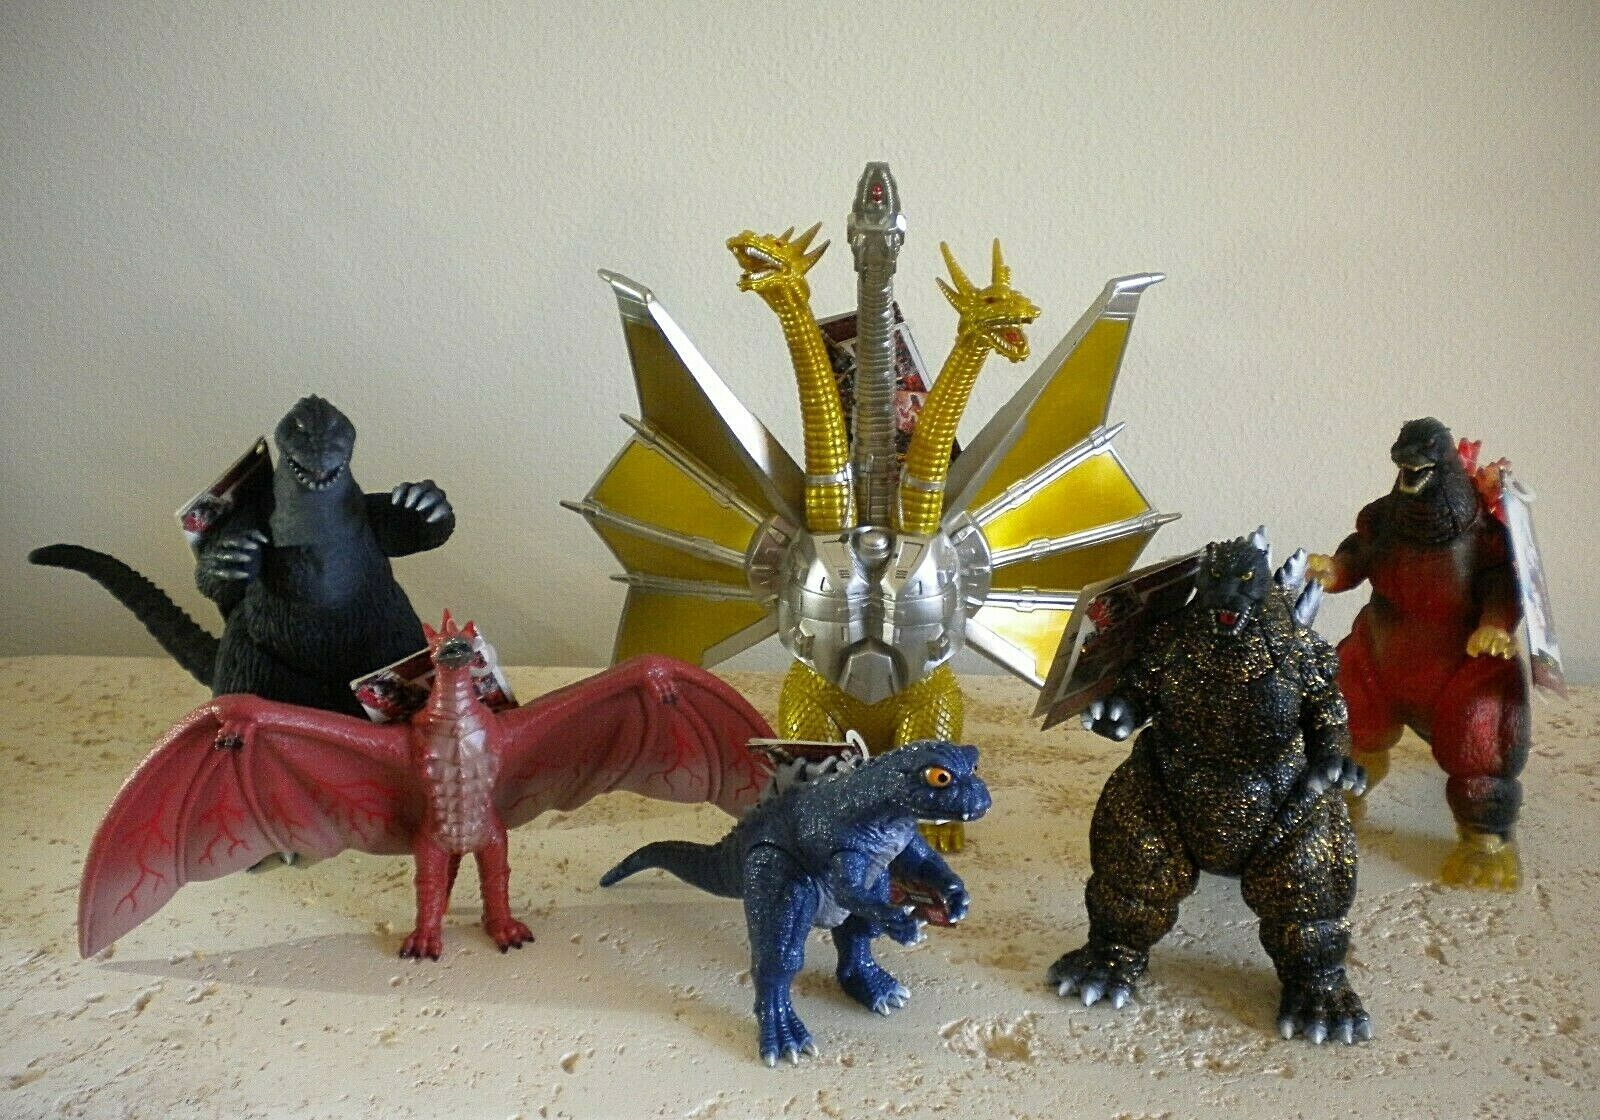 BANDAI 1996 - GODZILLA FOREVER SERIES COMPLETE 6 PIECE 8 8 8  SCALE FIGURE SET - NEW 8788ef